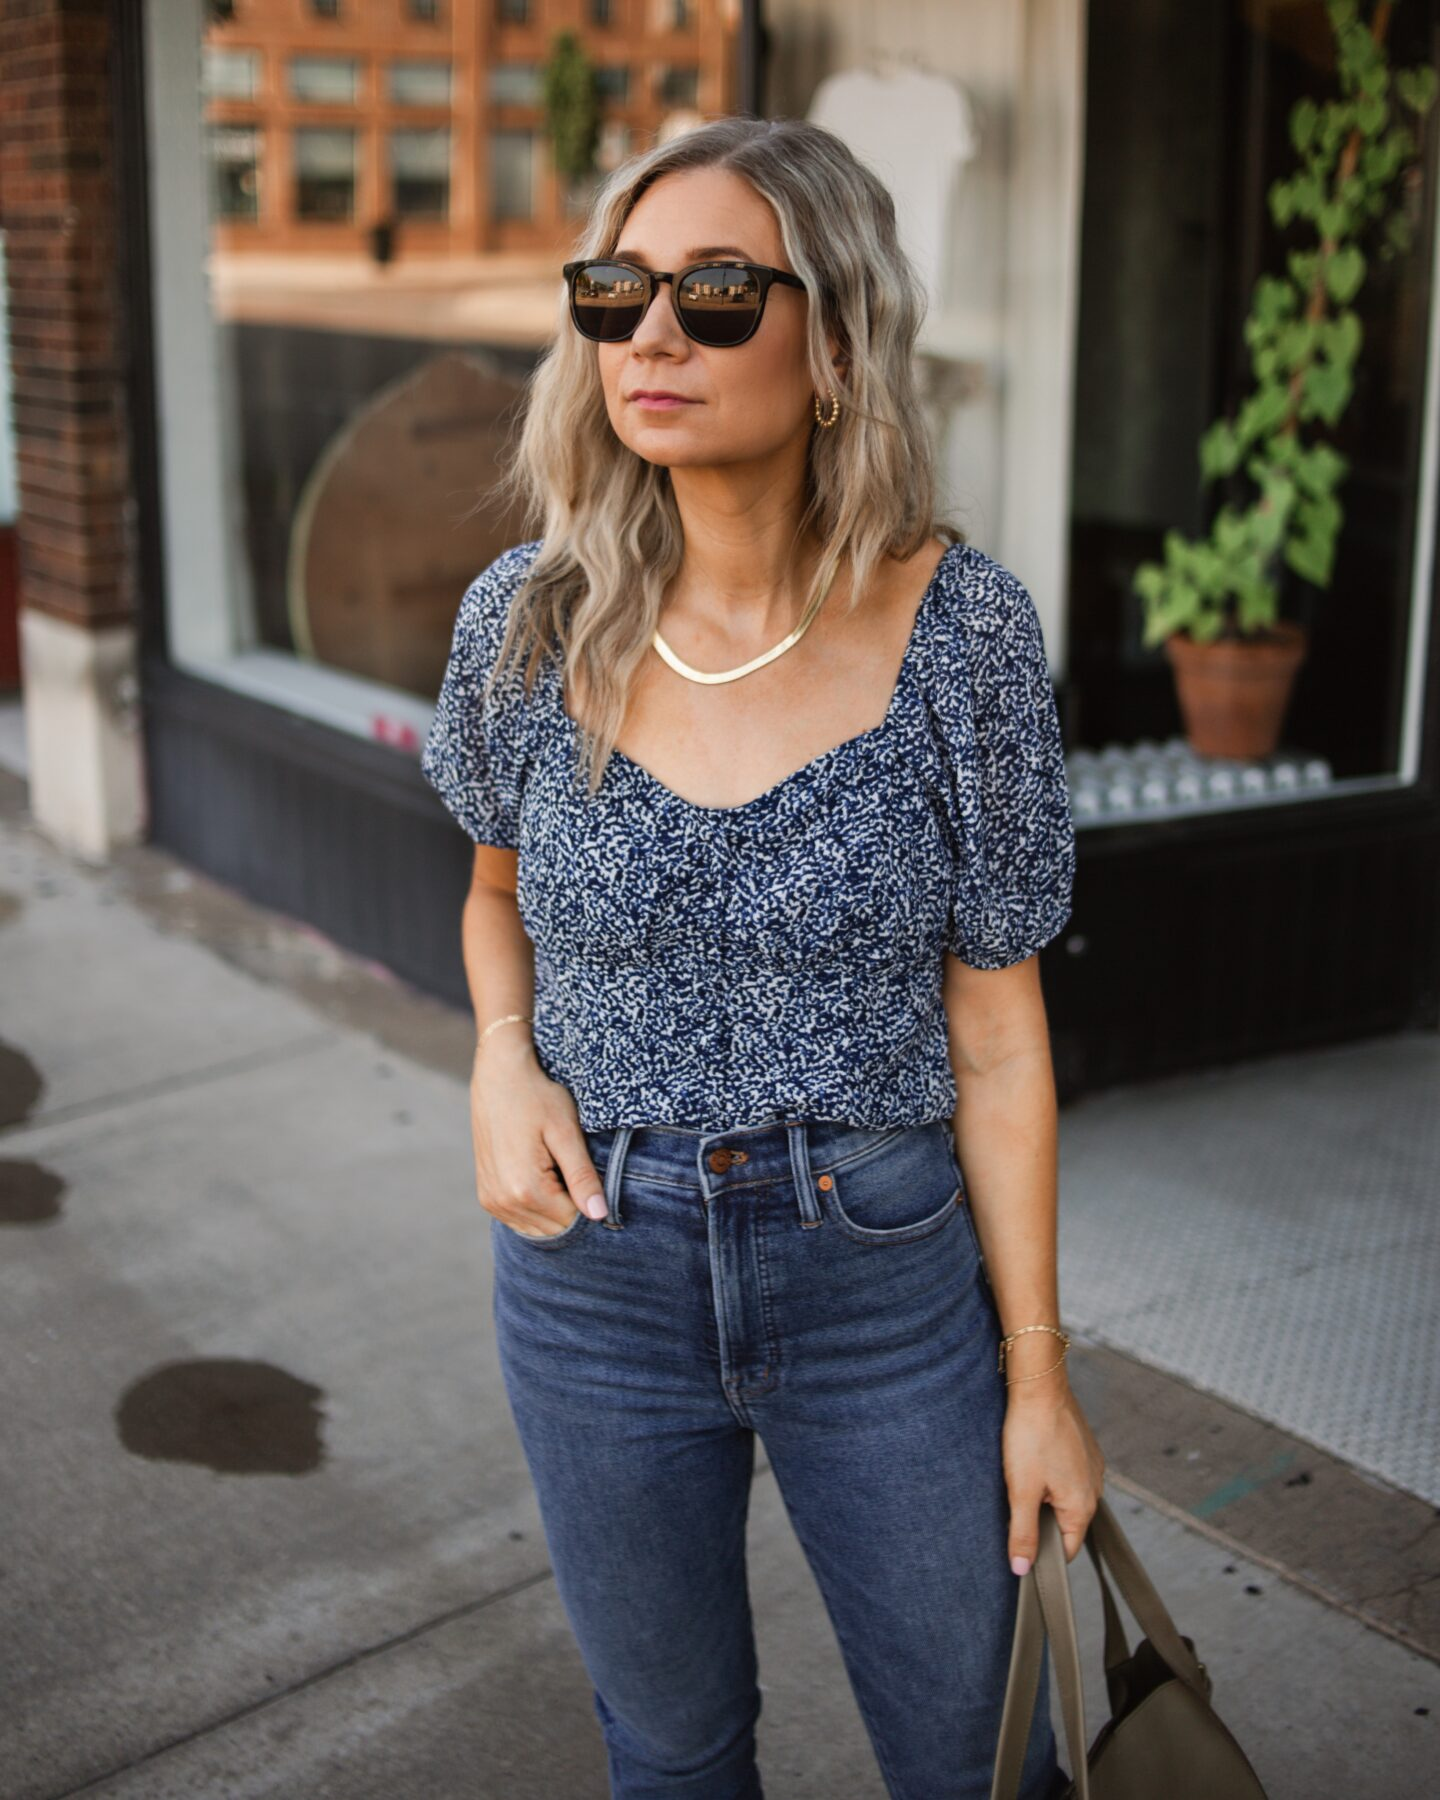 madewell perfect vintage jeans, madewell mules, madewell blouse, madewell bag, review